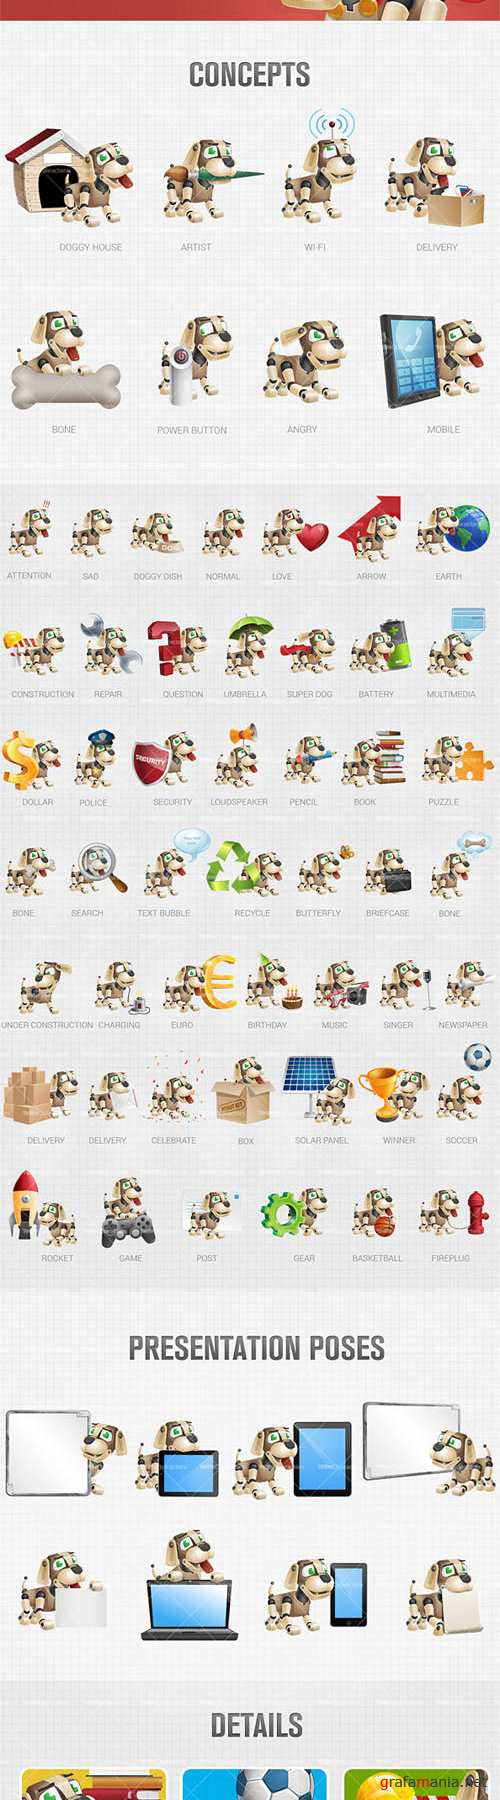 Dog Robot Cartoon Character Set - AI, EPS, PSD Vector Cliparts